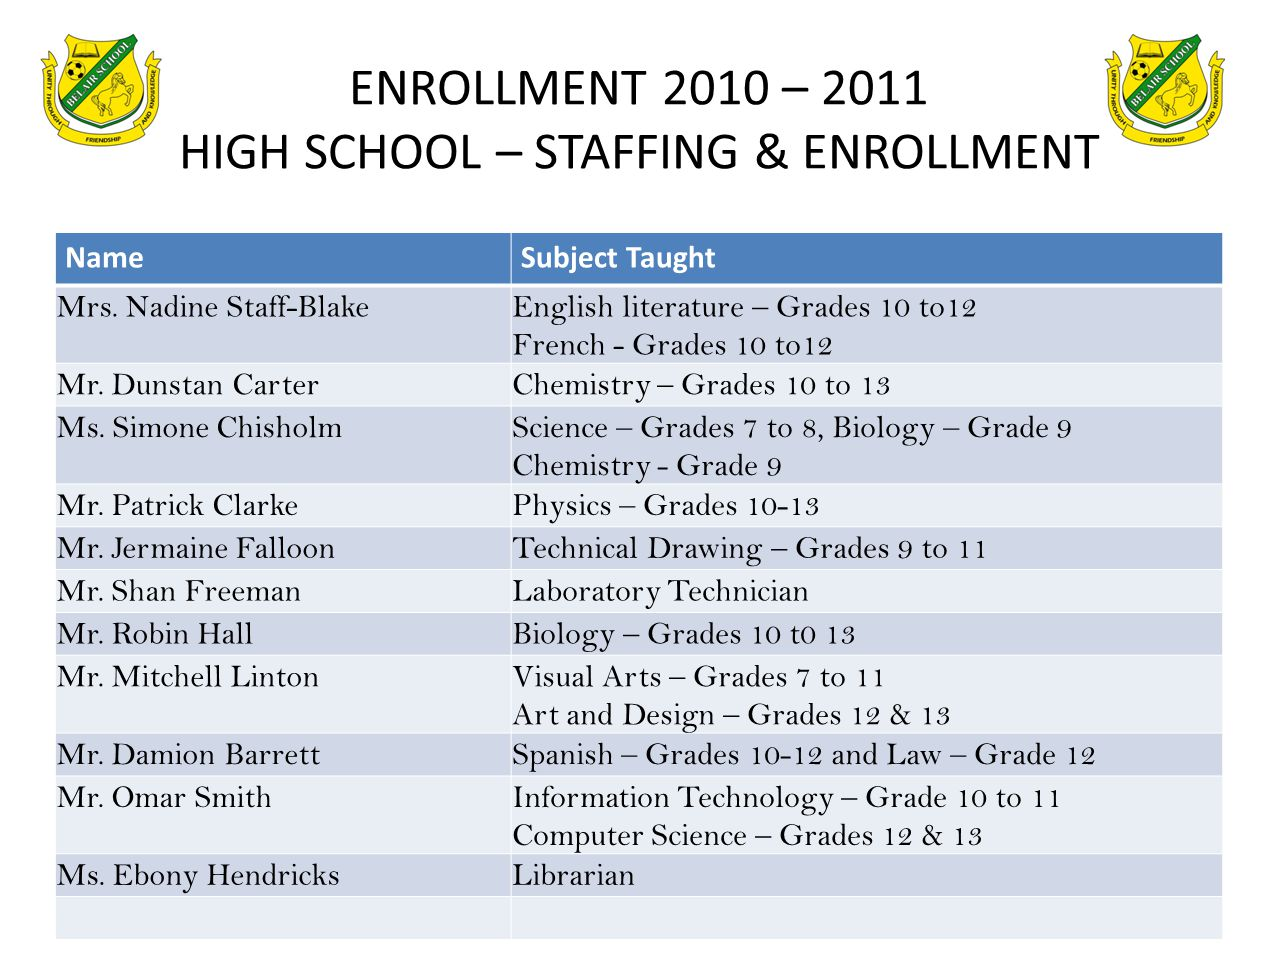 ENROLLMENT 2010 – 2011 HIGH SCHOOL – STAFFING & ENROLLMENT